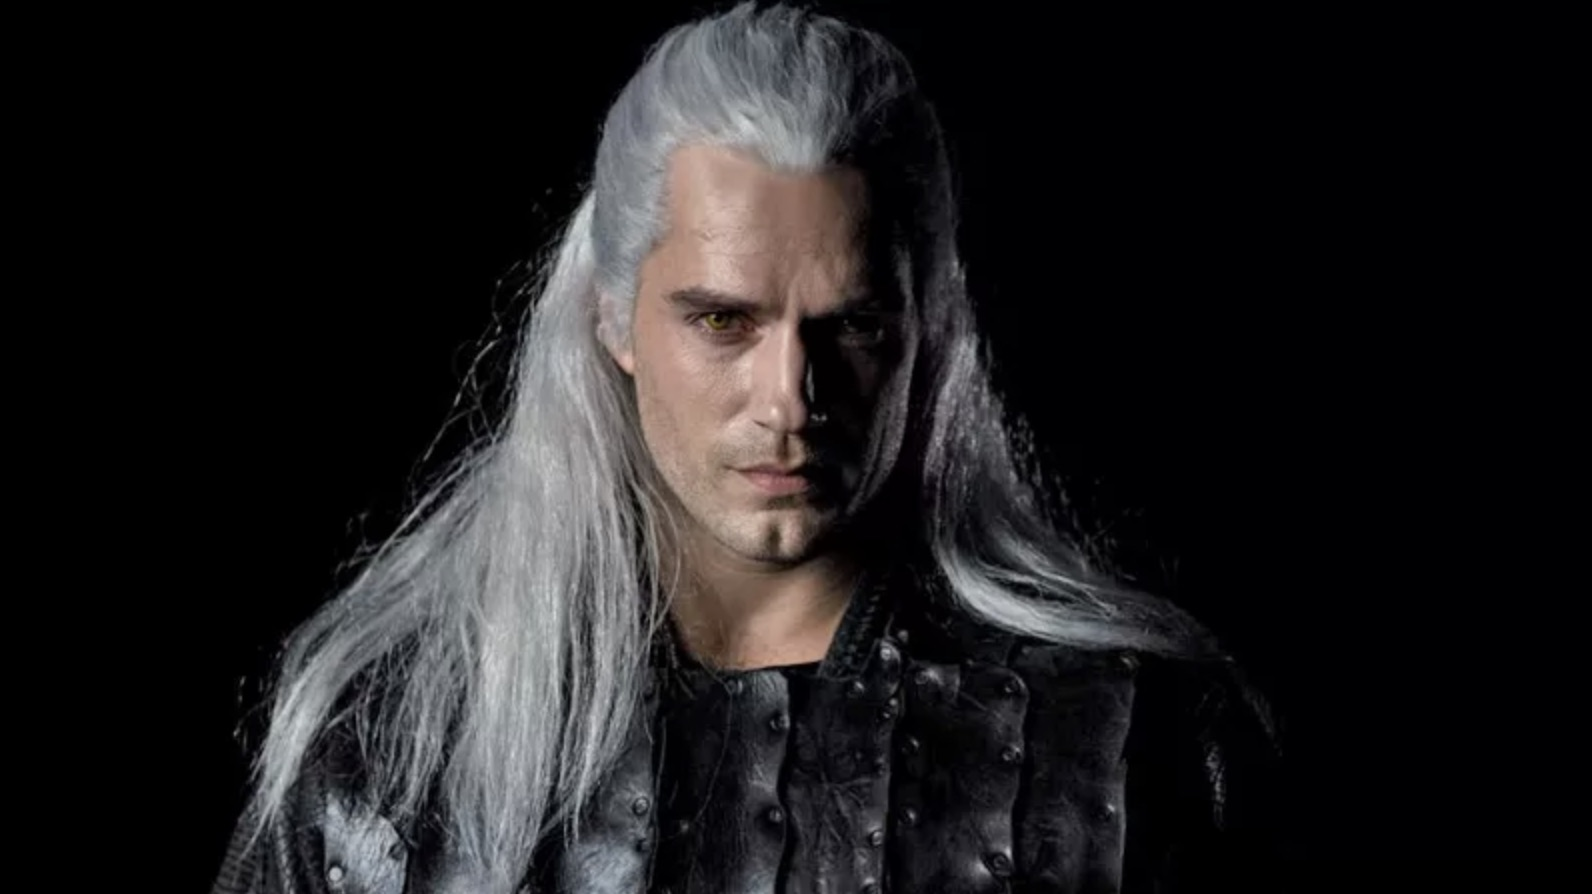 eurovision asia proud boys banned geralt witcher